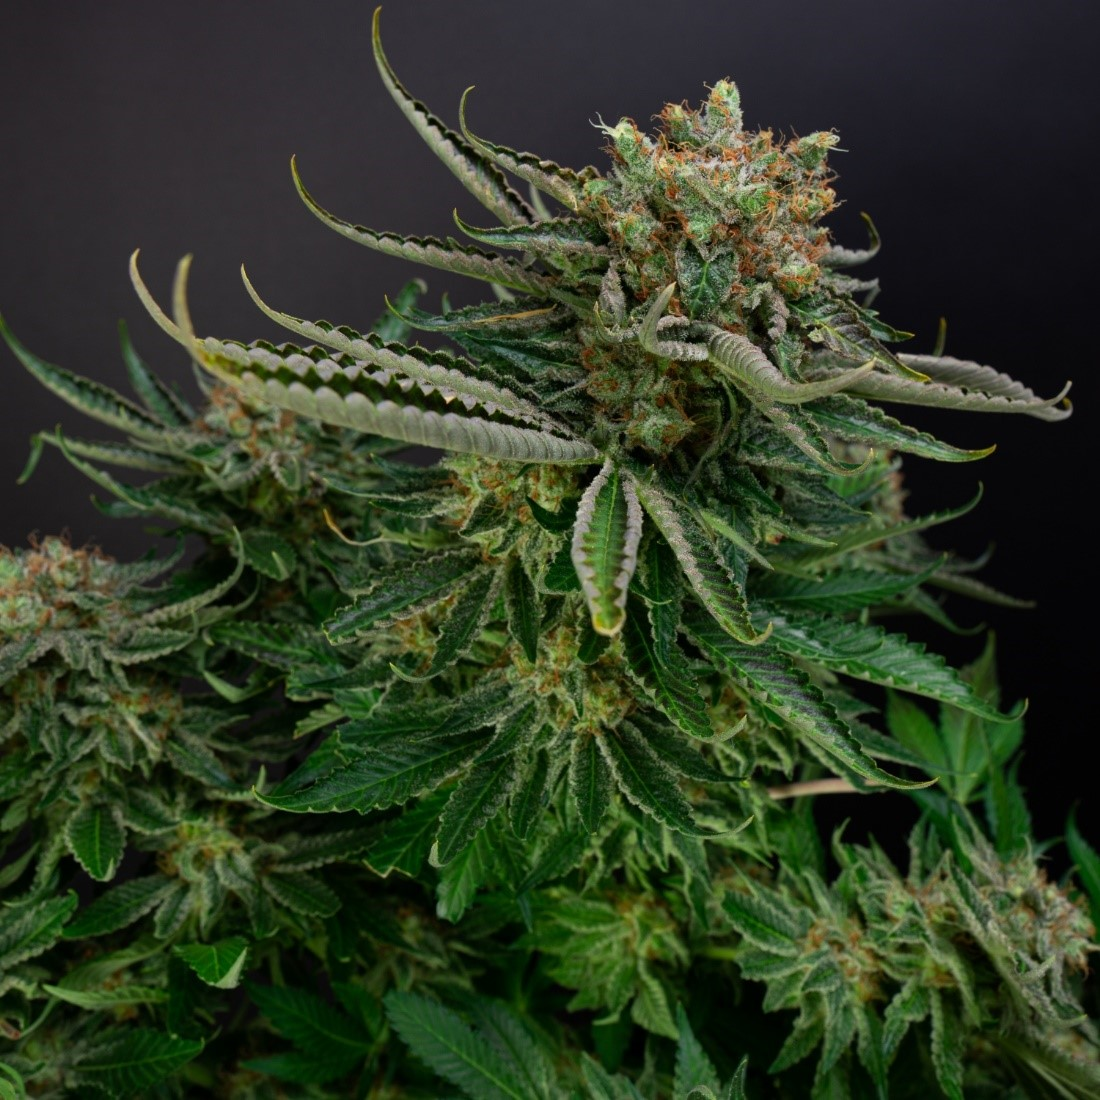 Buy Cannabis Seeds UK at Discount Cannabis Seeds